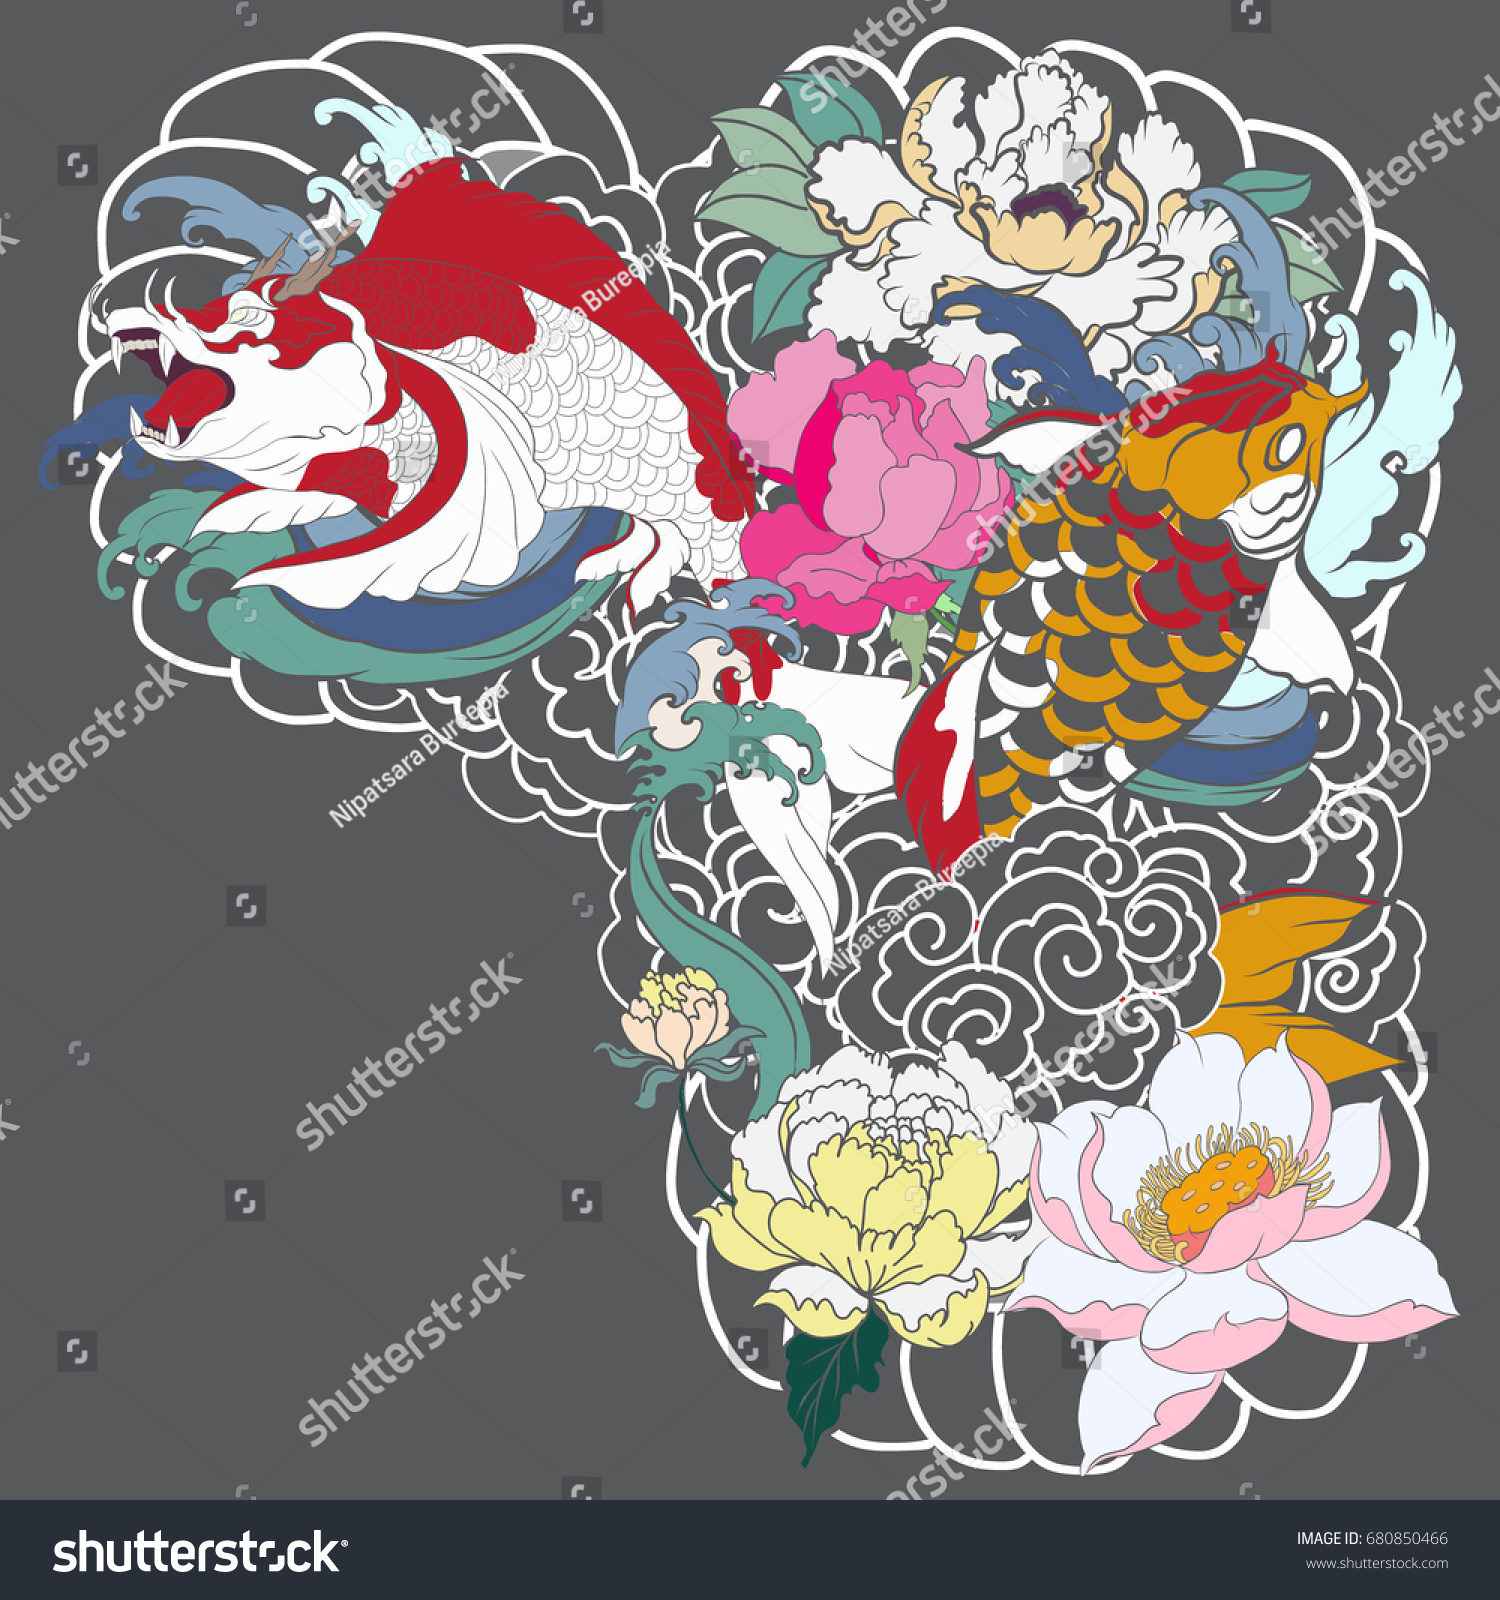 Traditional japanese tattoo design for upper arm to chest colorful hand drawn koi carp fish with peony flowers lotuses and water splashes